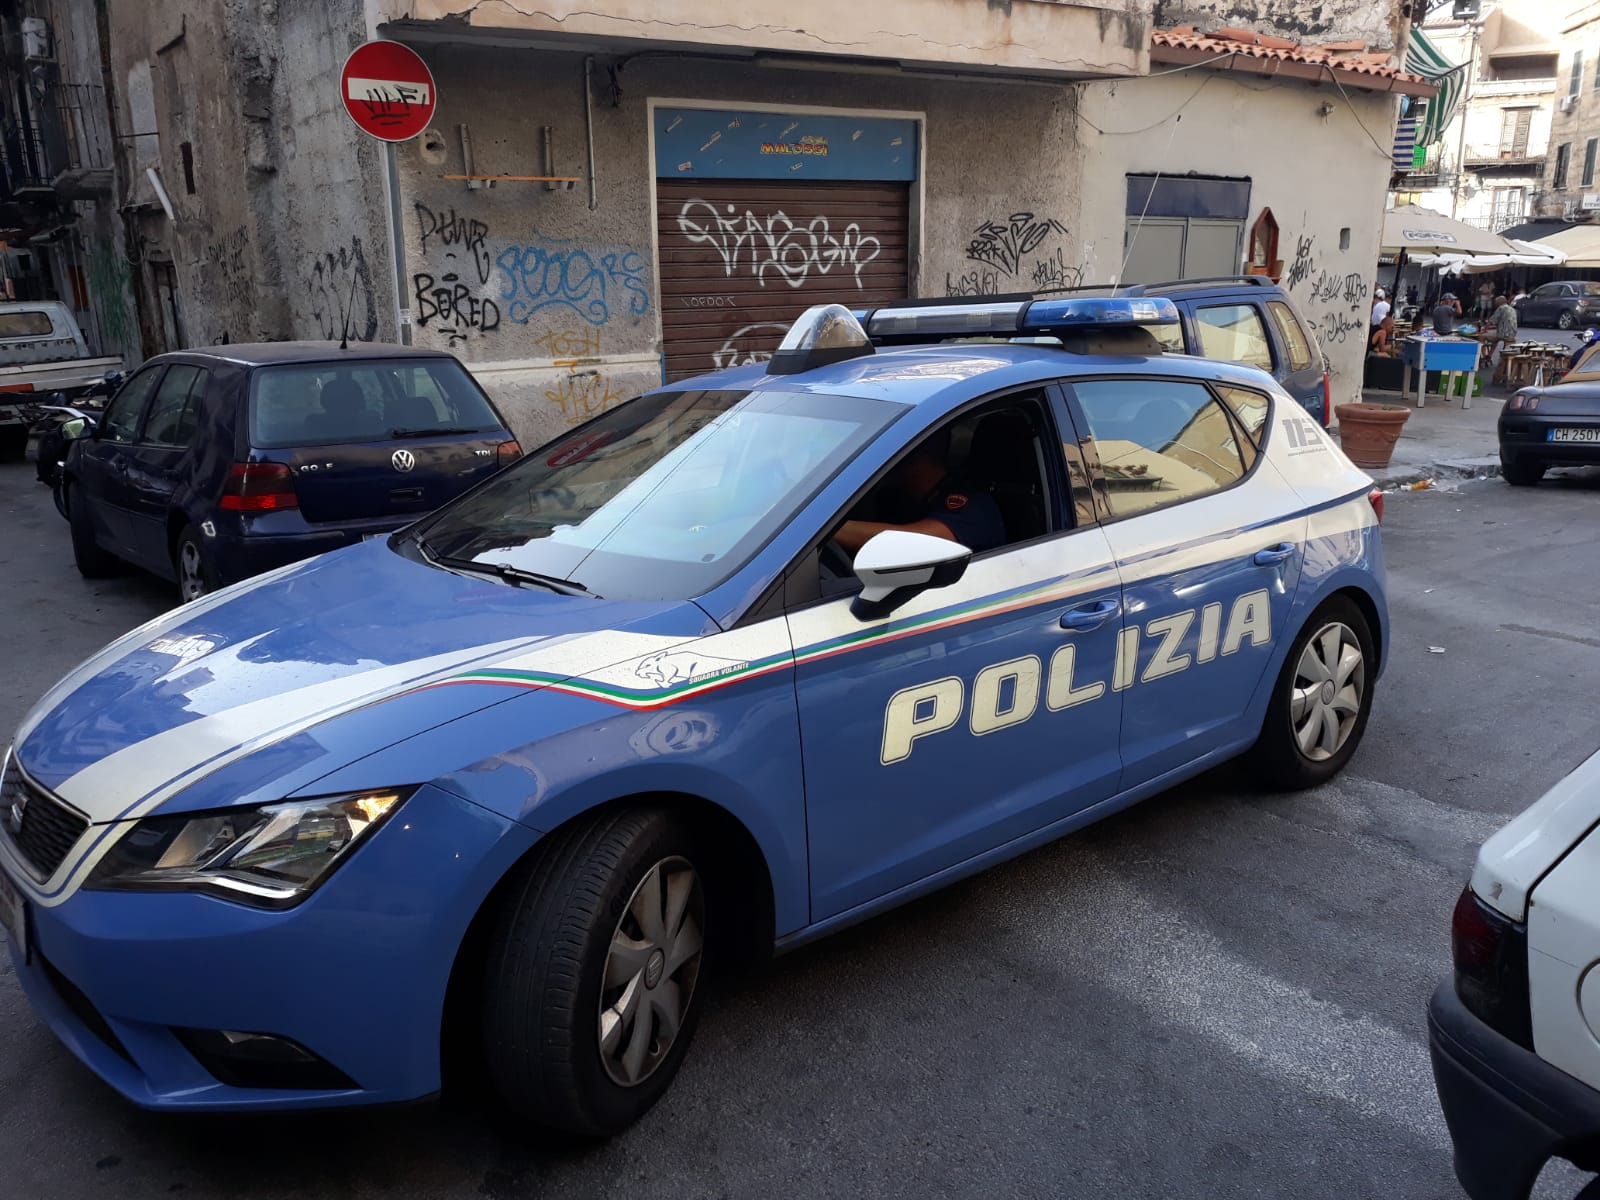 Spacciava droga a Ballarò. Pusher arrestato